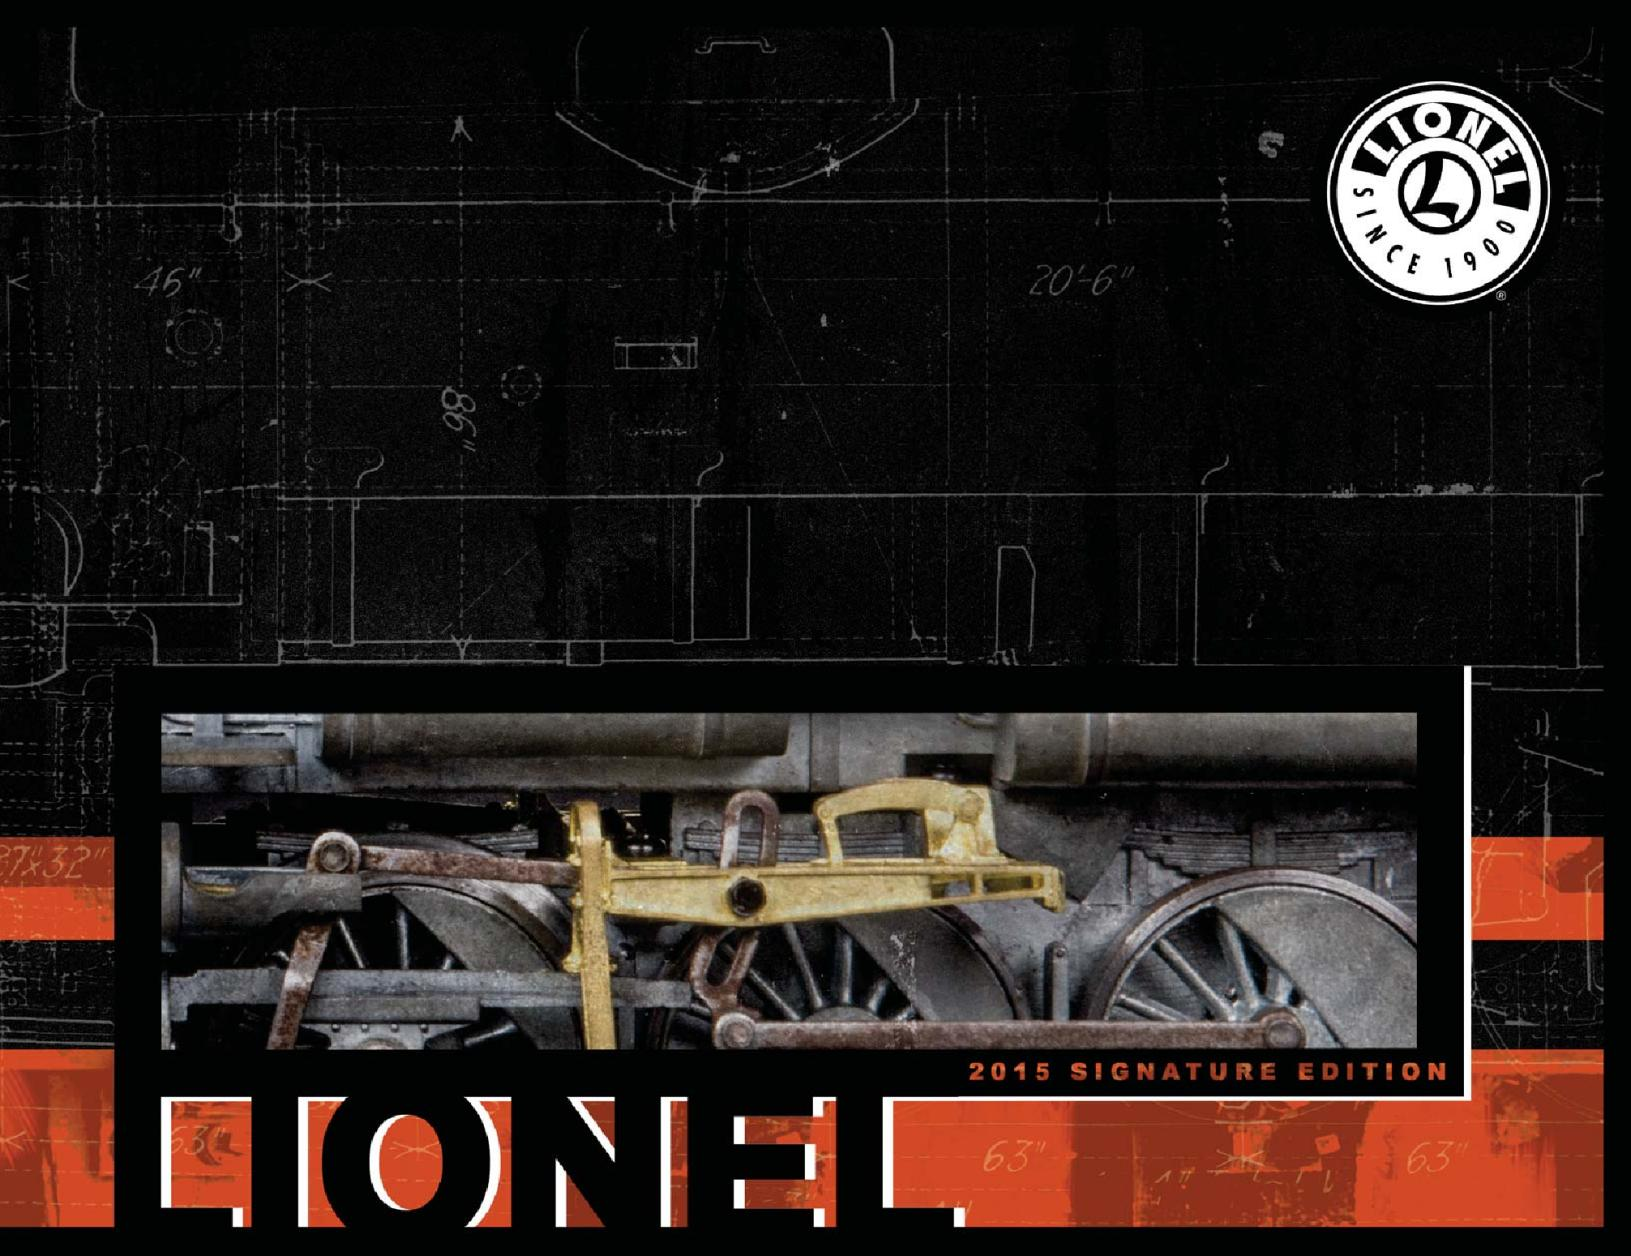 Lionel Catalogs - Signature Edition 2015